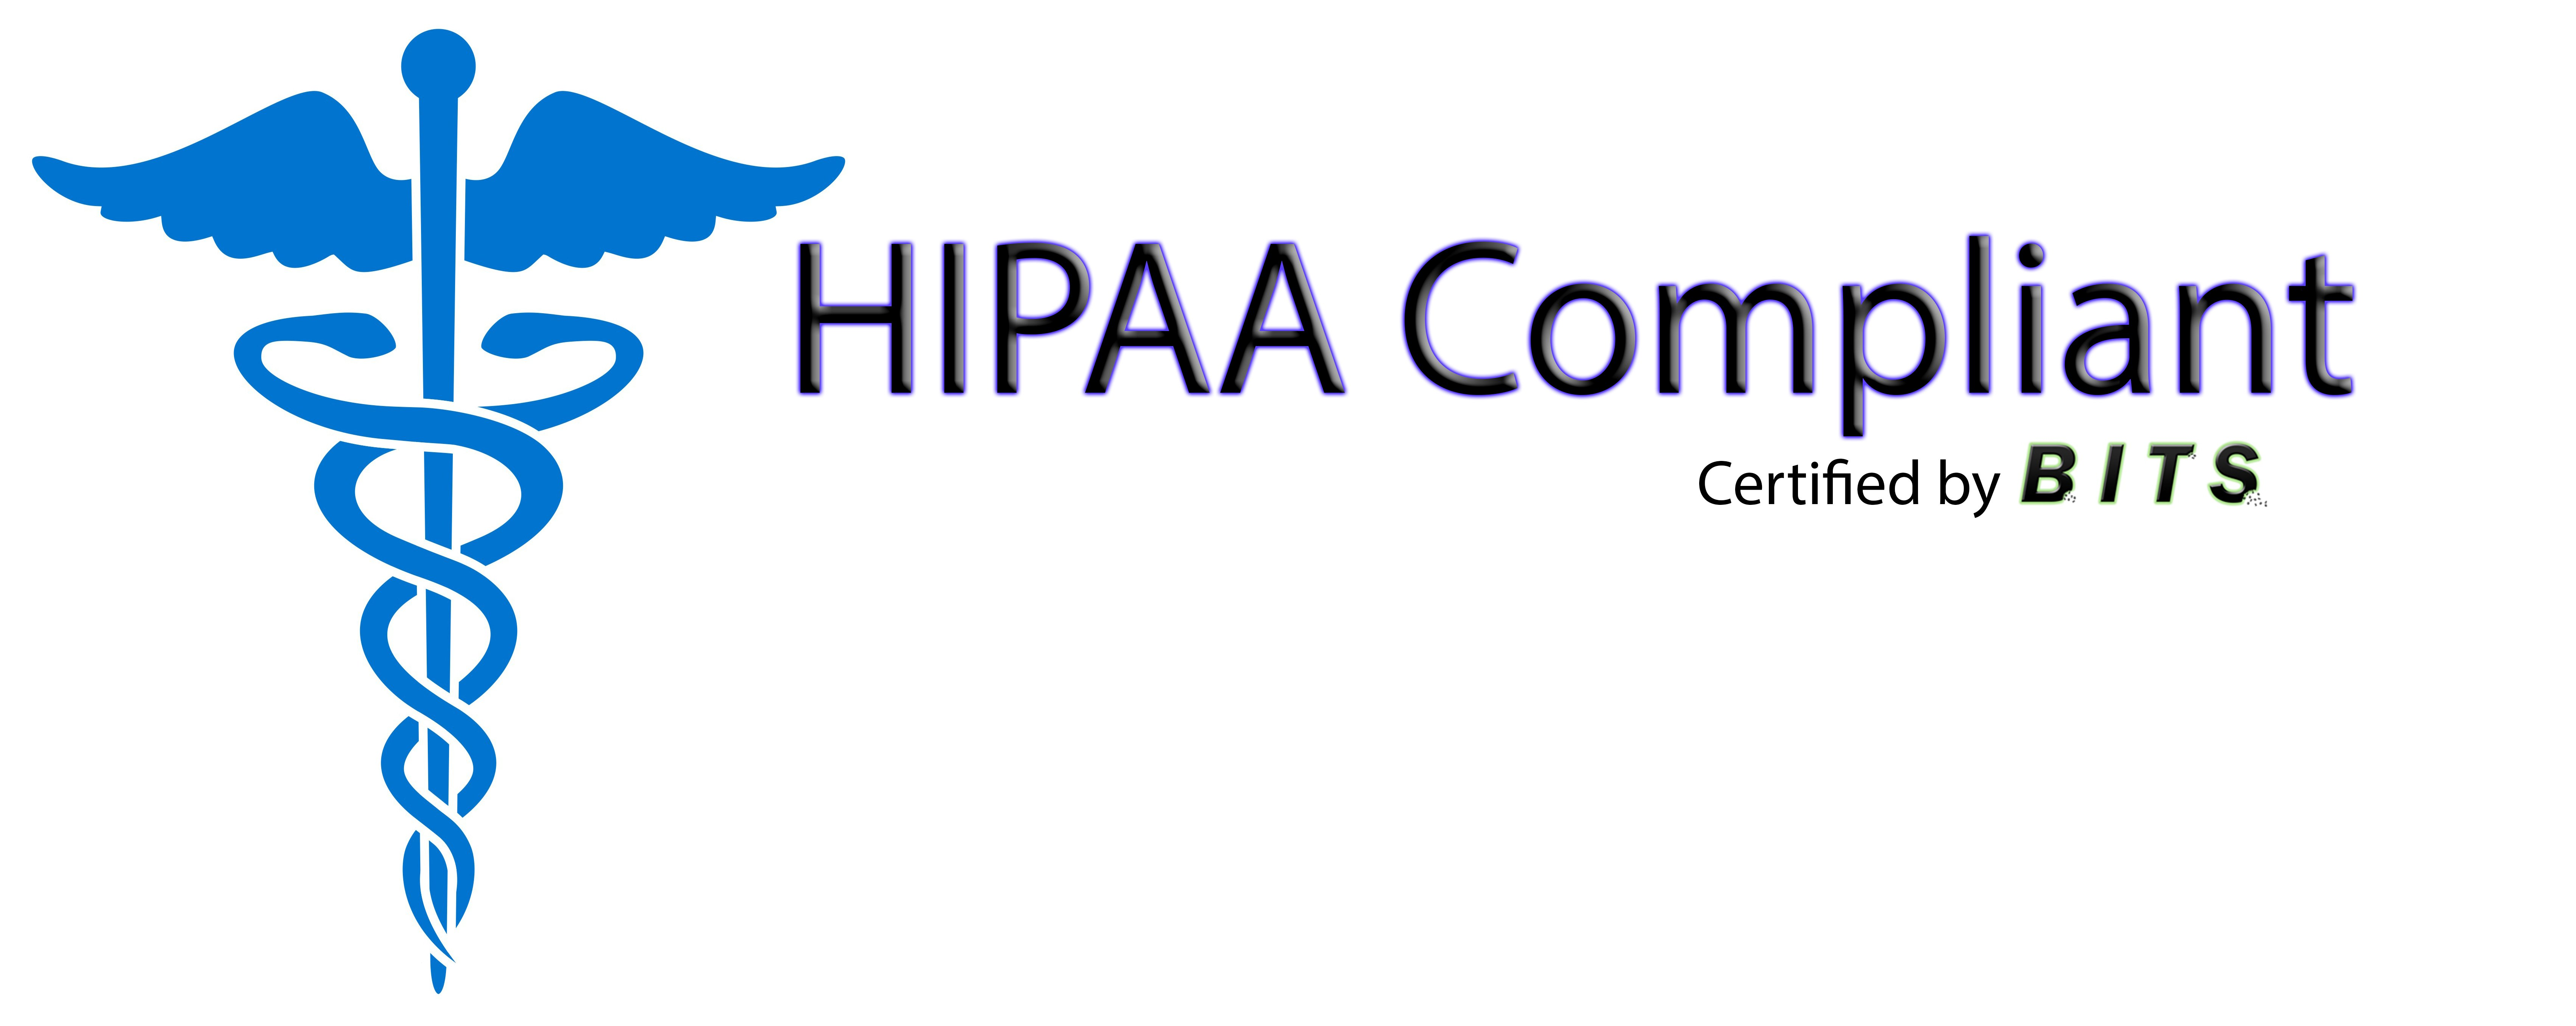 hipaa compliance Steri safe sm hipaa training and compliance solutions are most trusted and comprehensive in the industry we provide you with the hipaa online resources and expert support you need to manage daily risks and meet all hipaa compliance requirements.